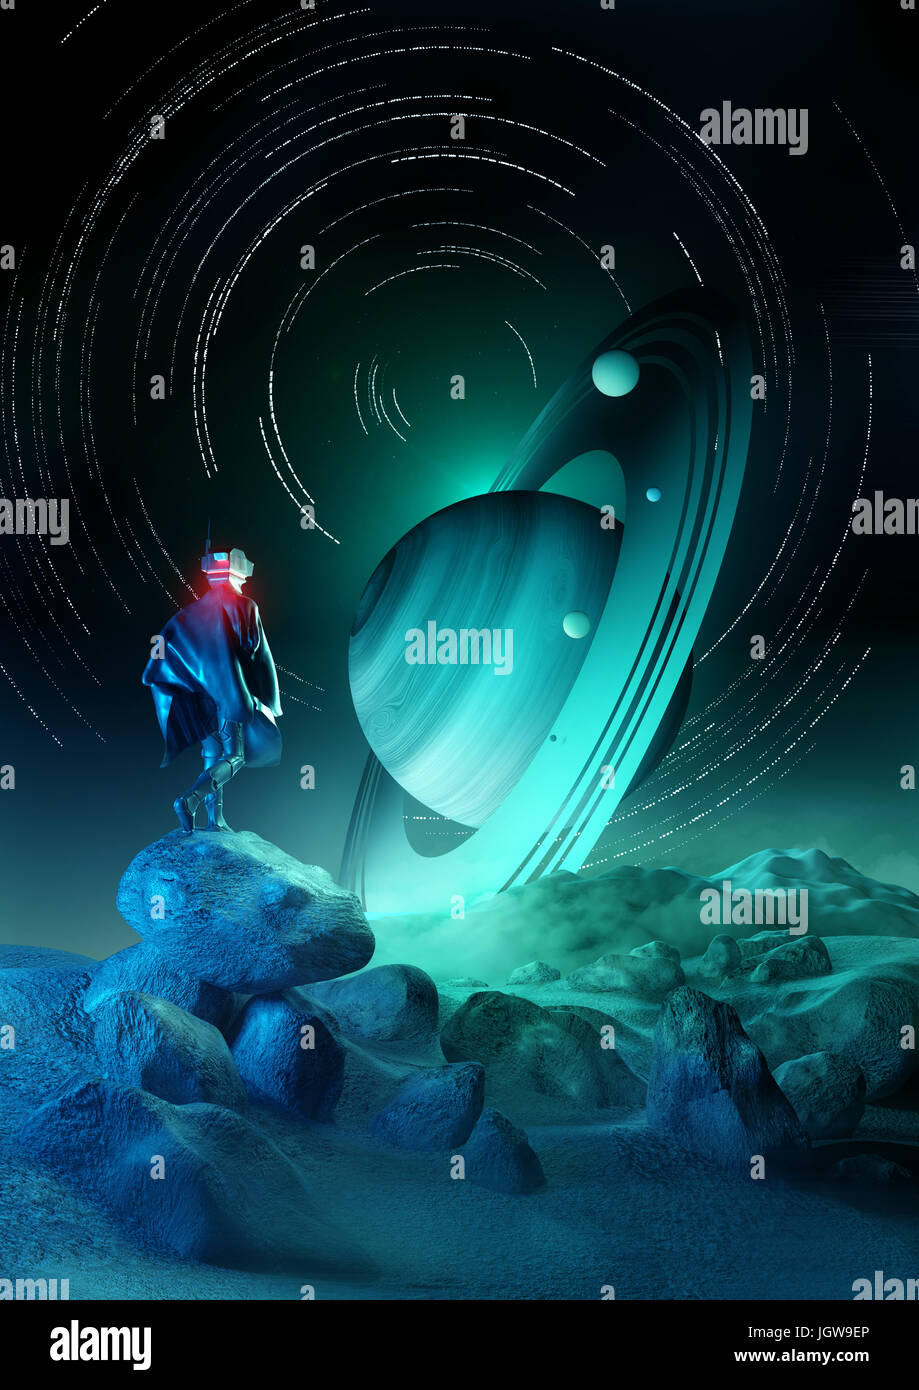 Wonder Exploration. A futuristic human exploring a strange planet system. 3D illustration. - Stock Image